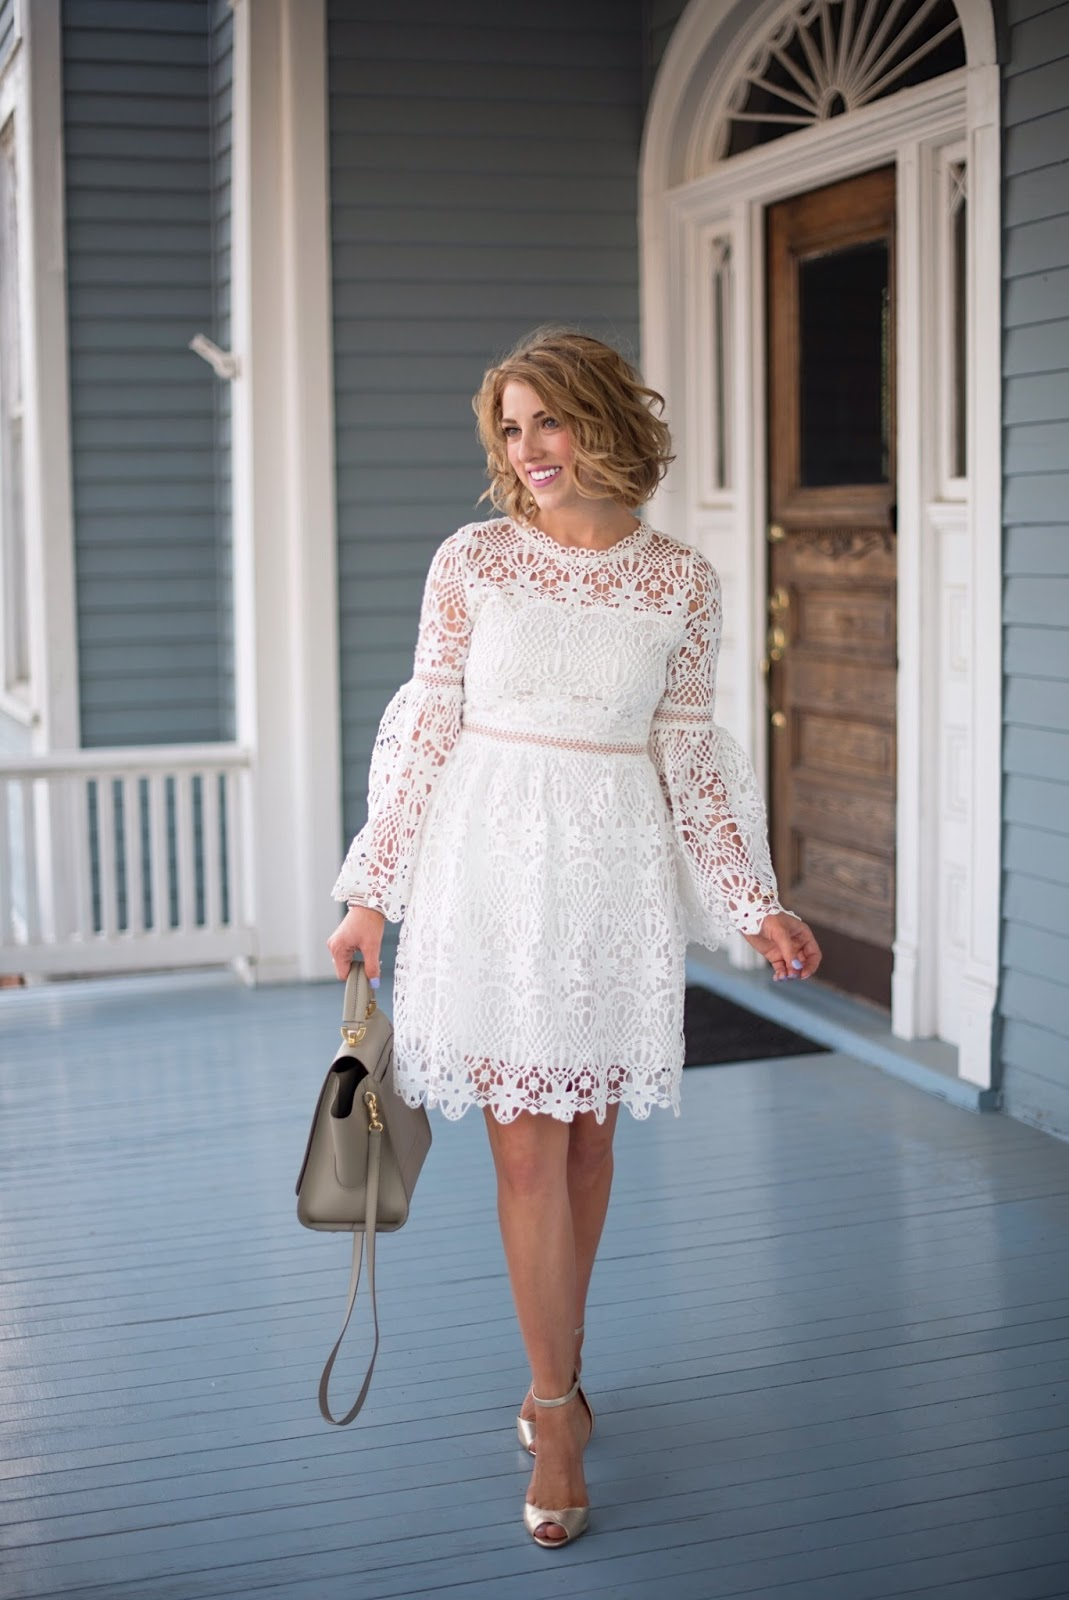 White Lace Dress - Click through to see more on Something Delightful Blog!